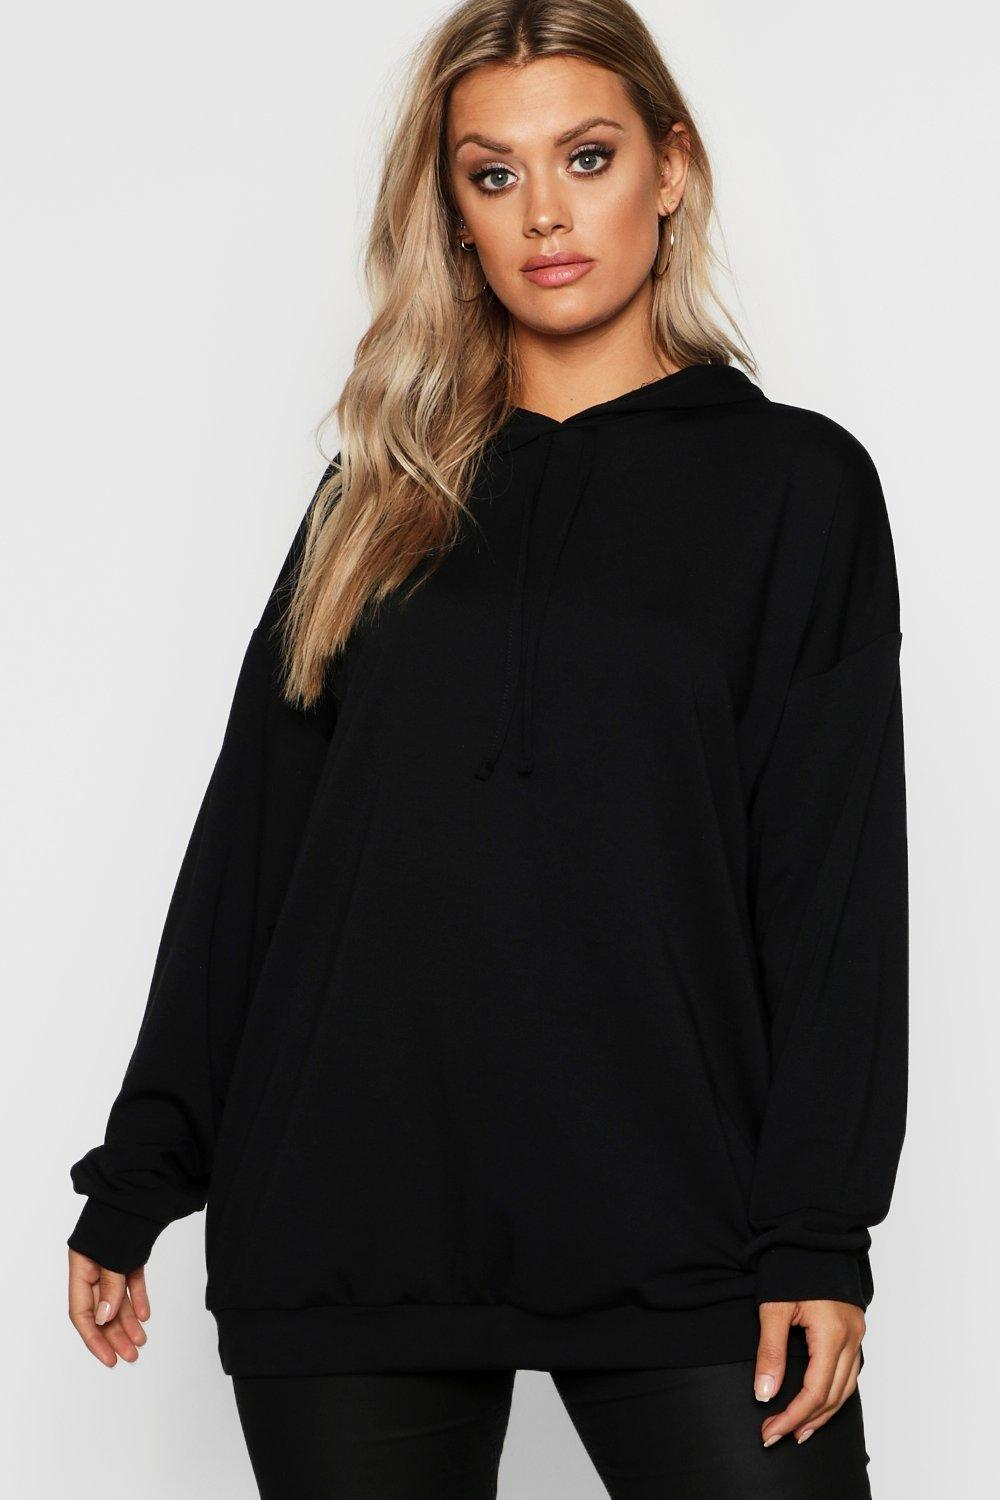 boohoo Womens Plus Oversized Hoody - Black - 22, Black